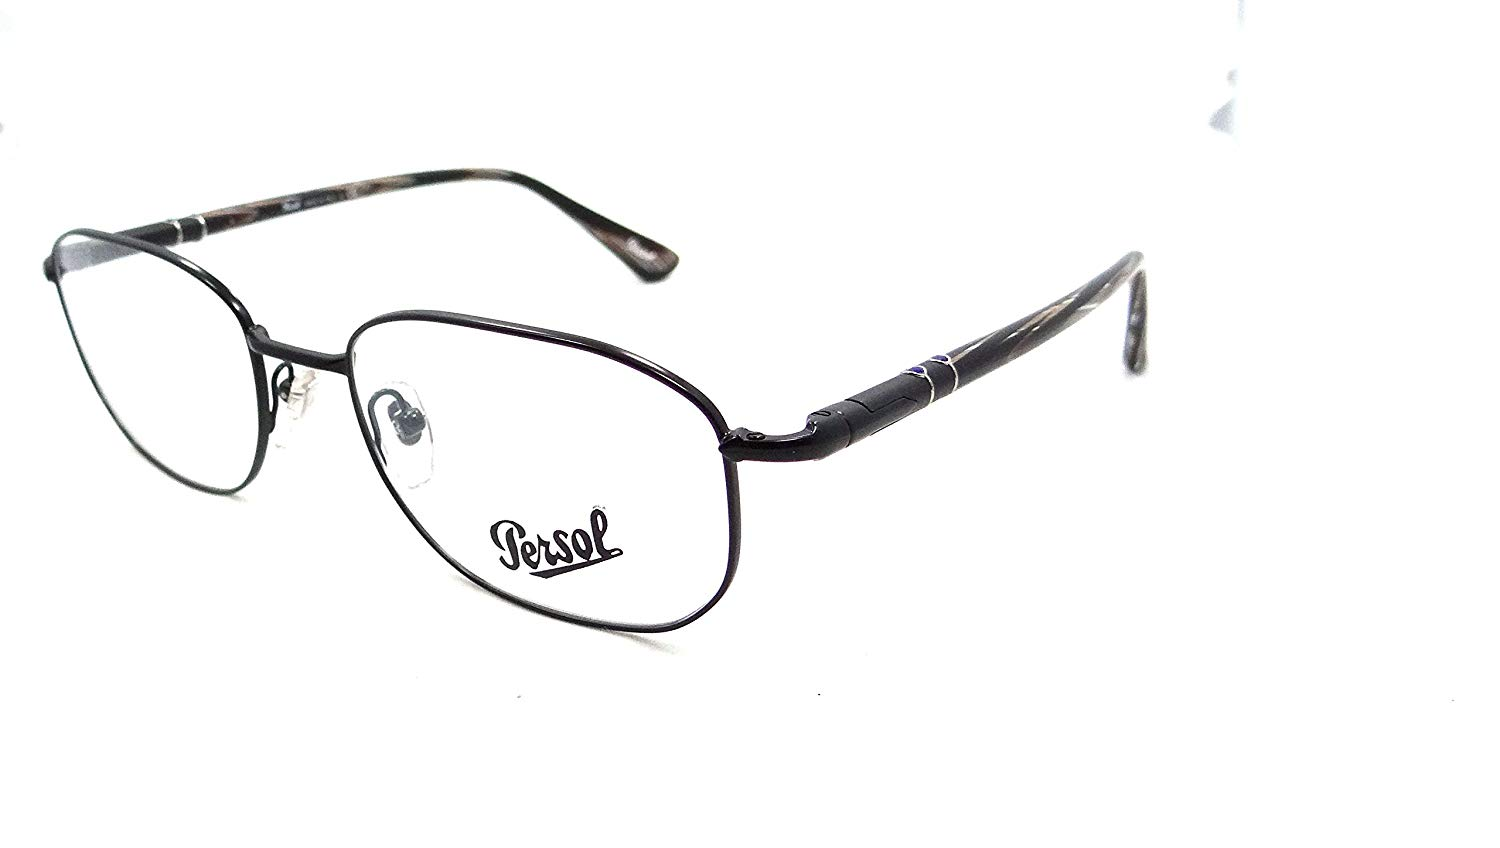 0bdf53e5d1caf Get Quotations · Persol Rx Eyeglasses Frames 2432 V 1055 53x18 Black with  Horn Made in Italy